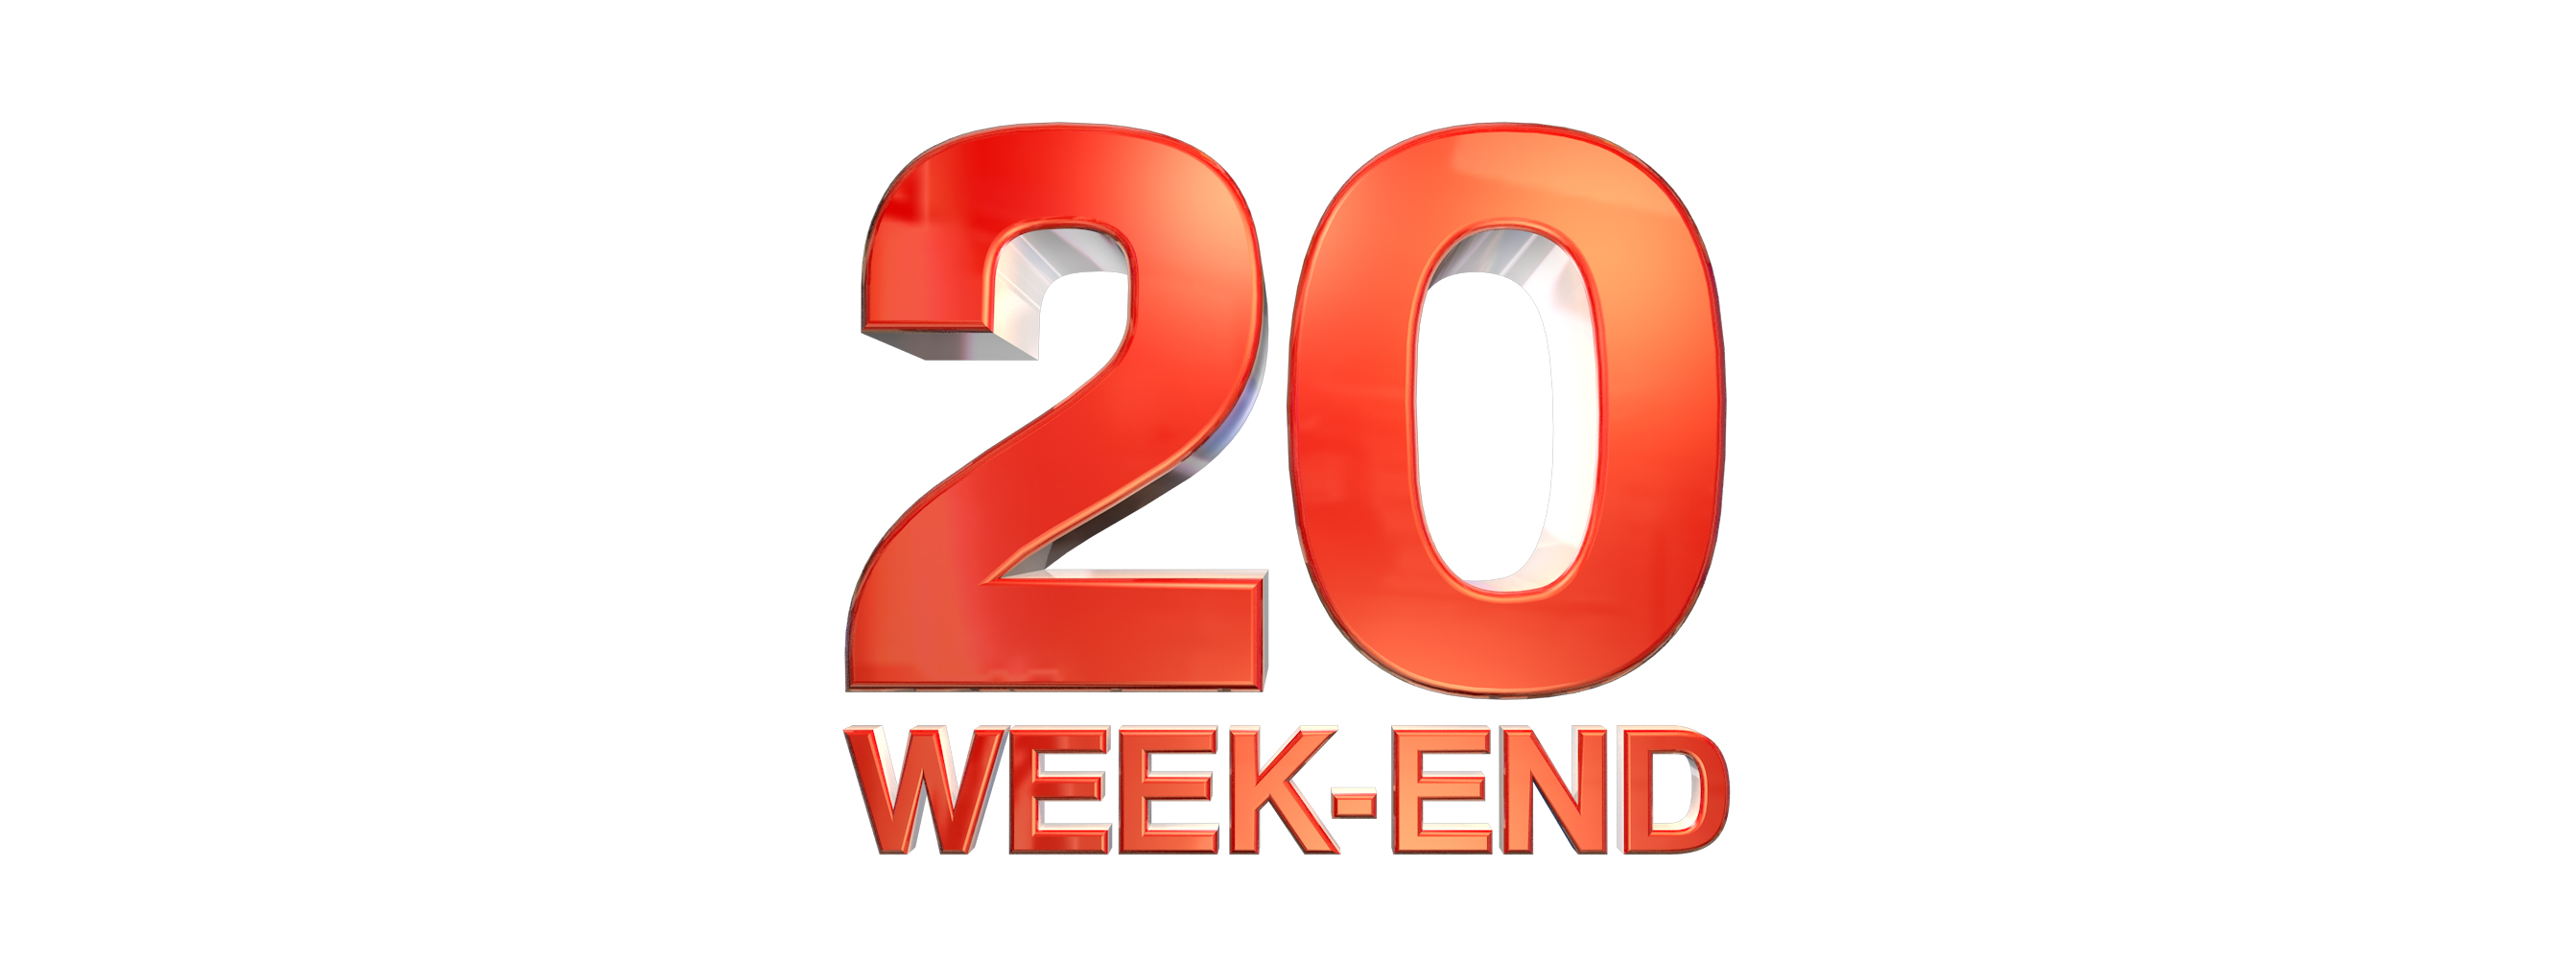 logo 20h week end